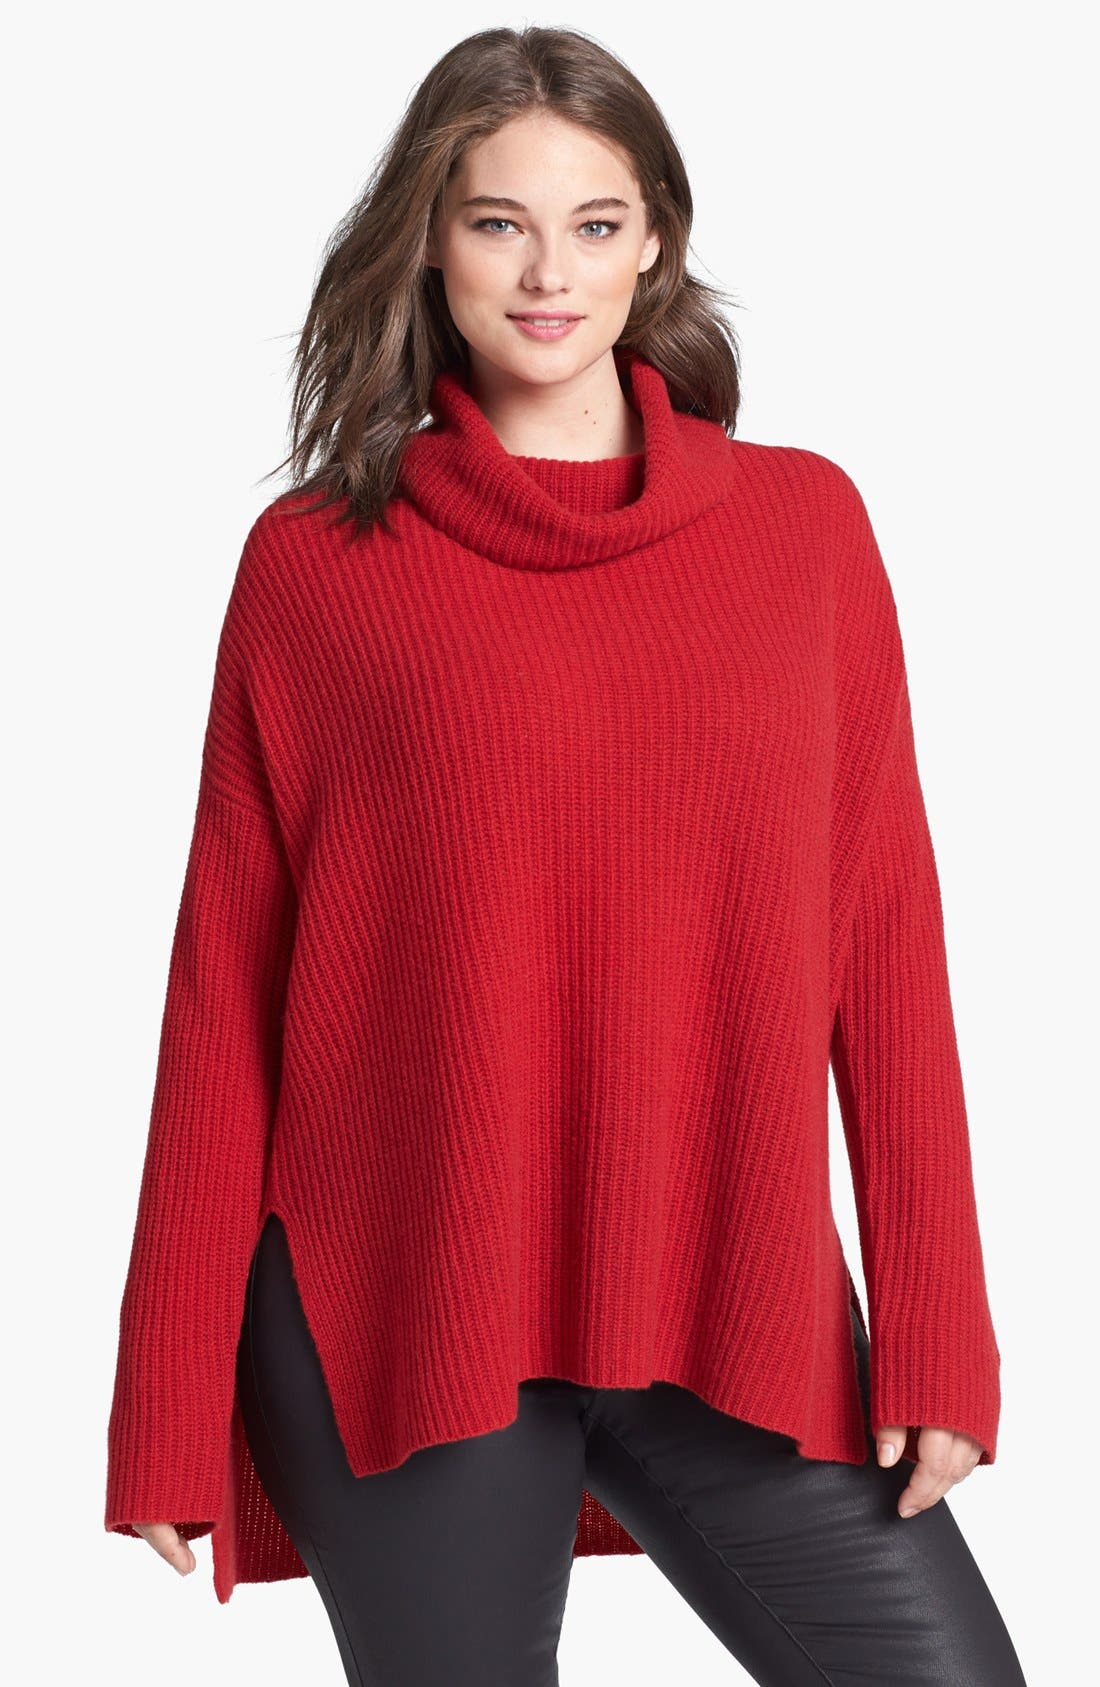 Main Image - Eileen Fisher Yak & Merino Turtleneck Poncho Sweater (Plus Size)